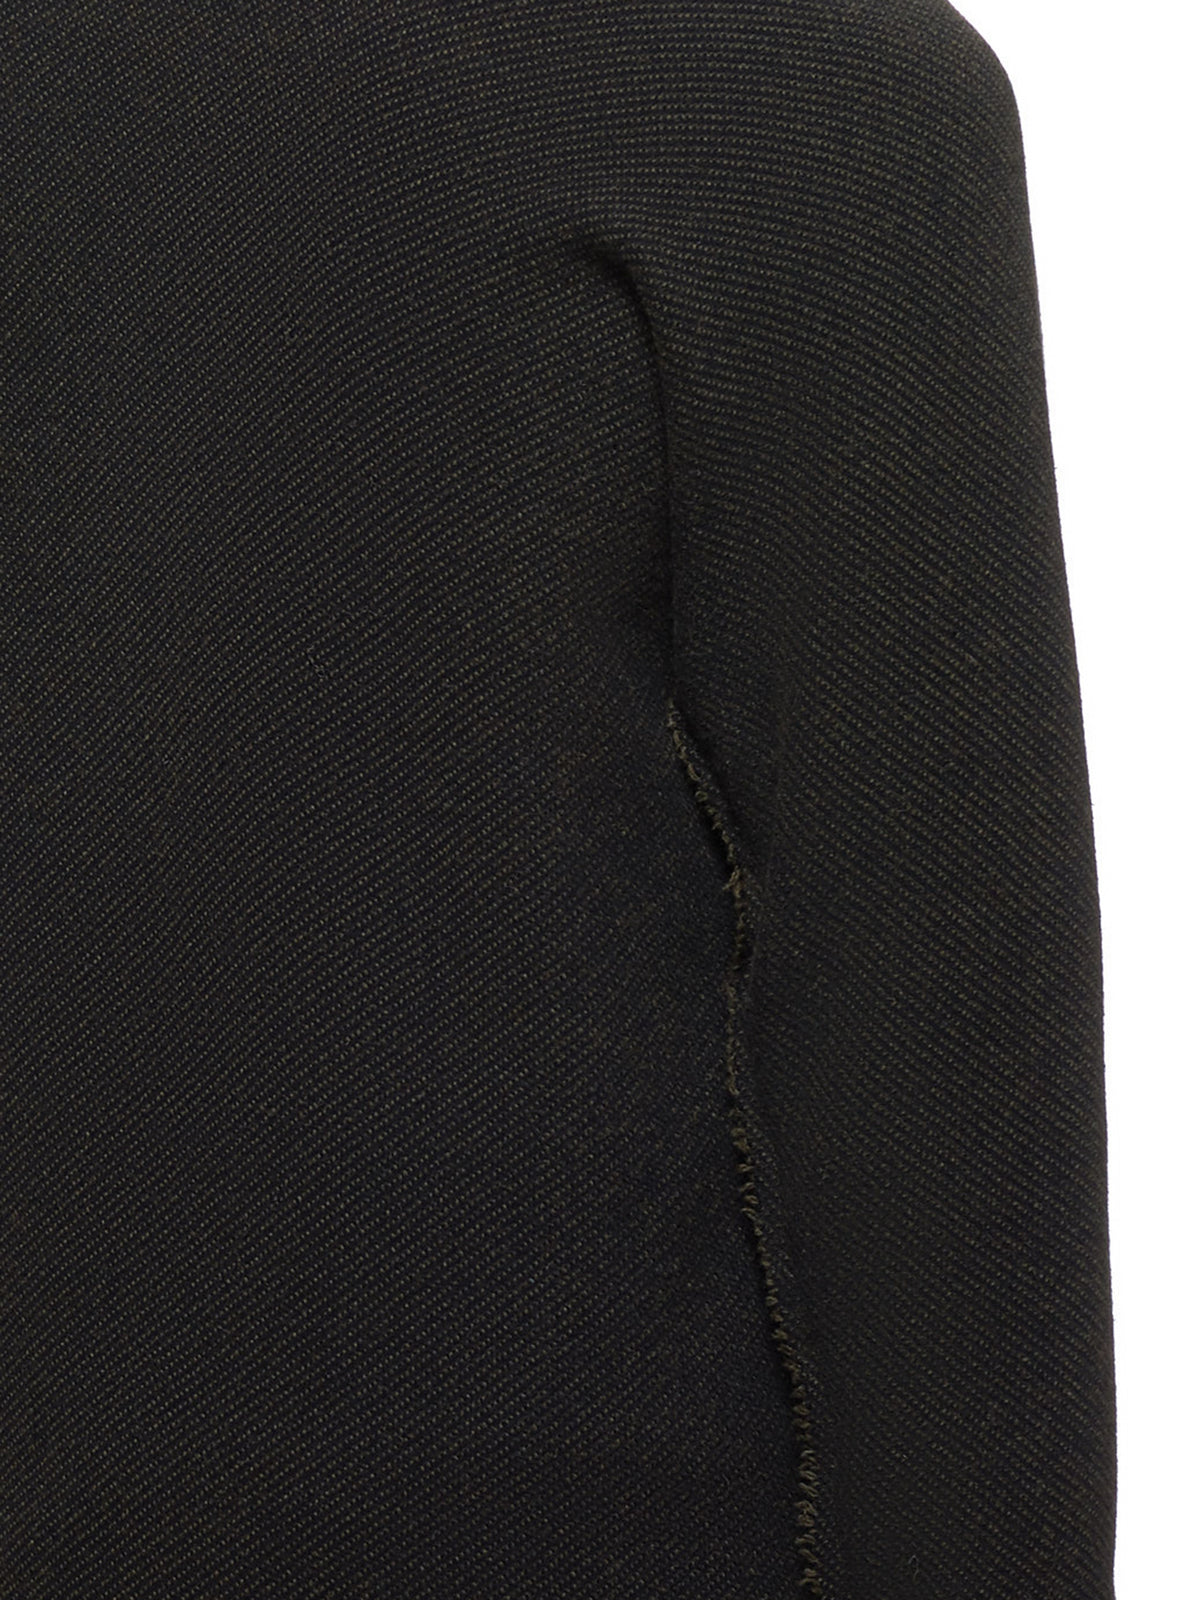 MA+ Sweater - Hlorenzo Detail 2